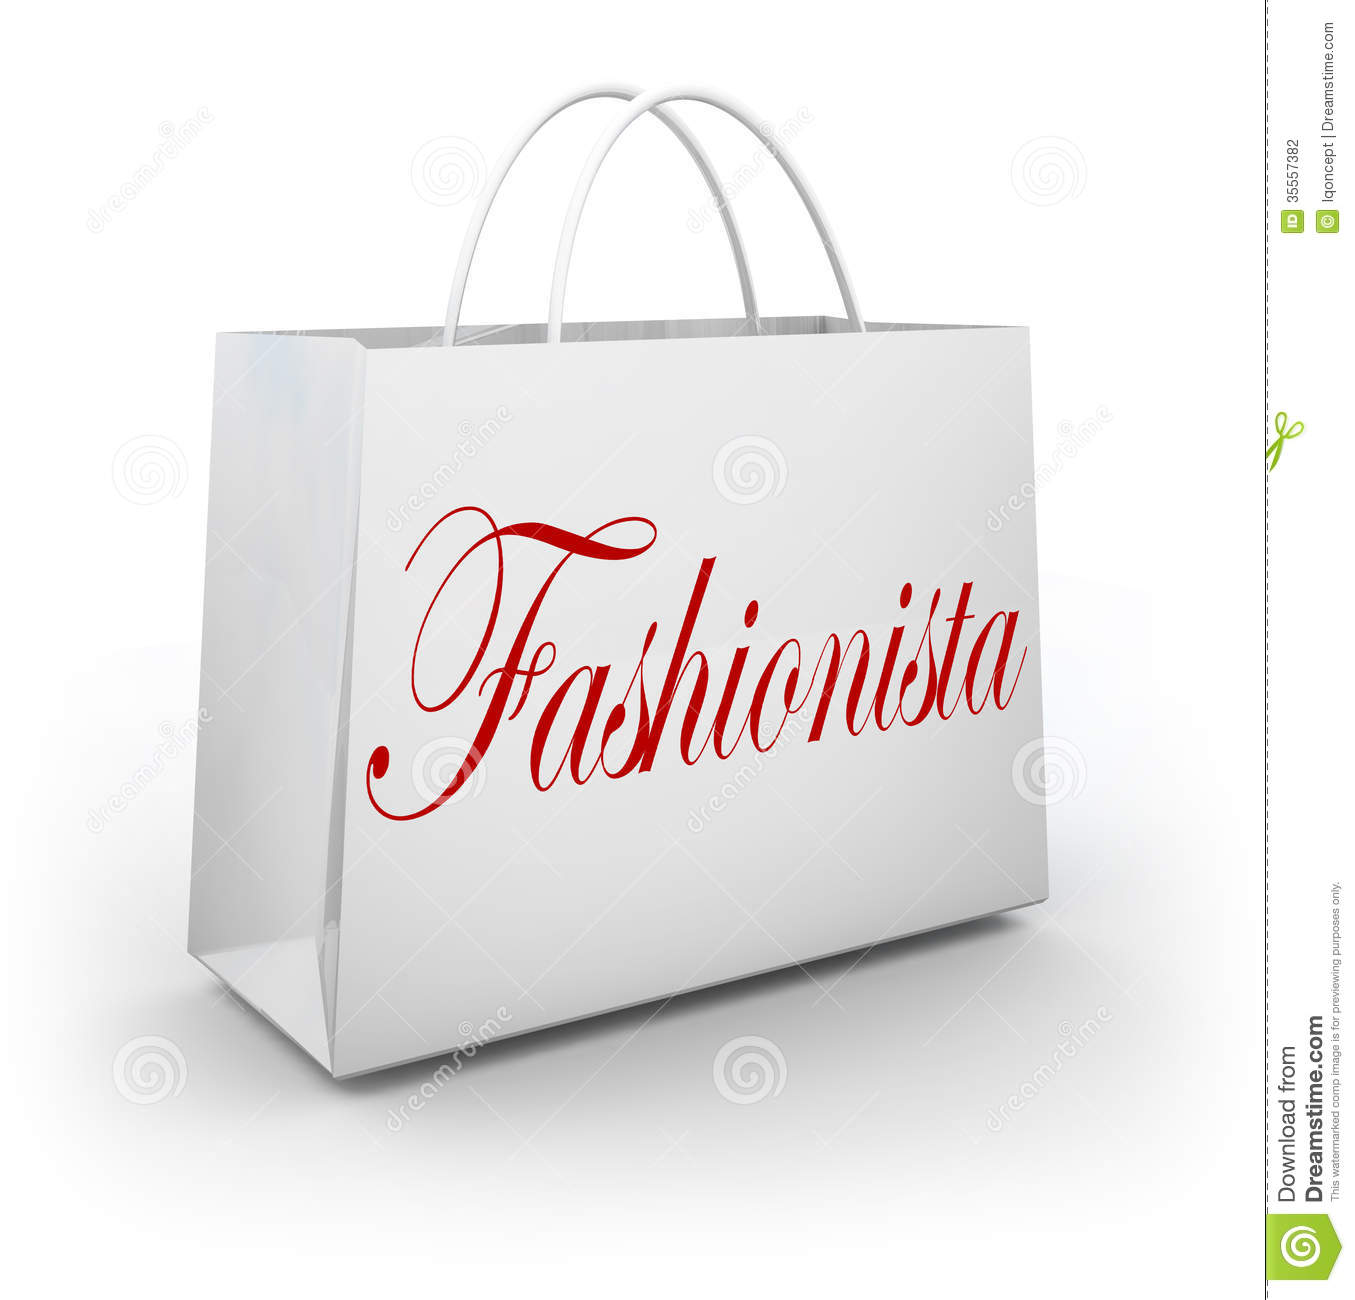 Fashion Merchandising buying paper online